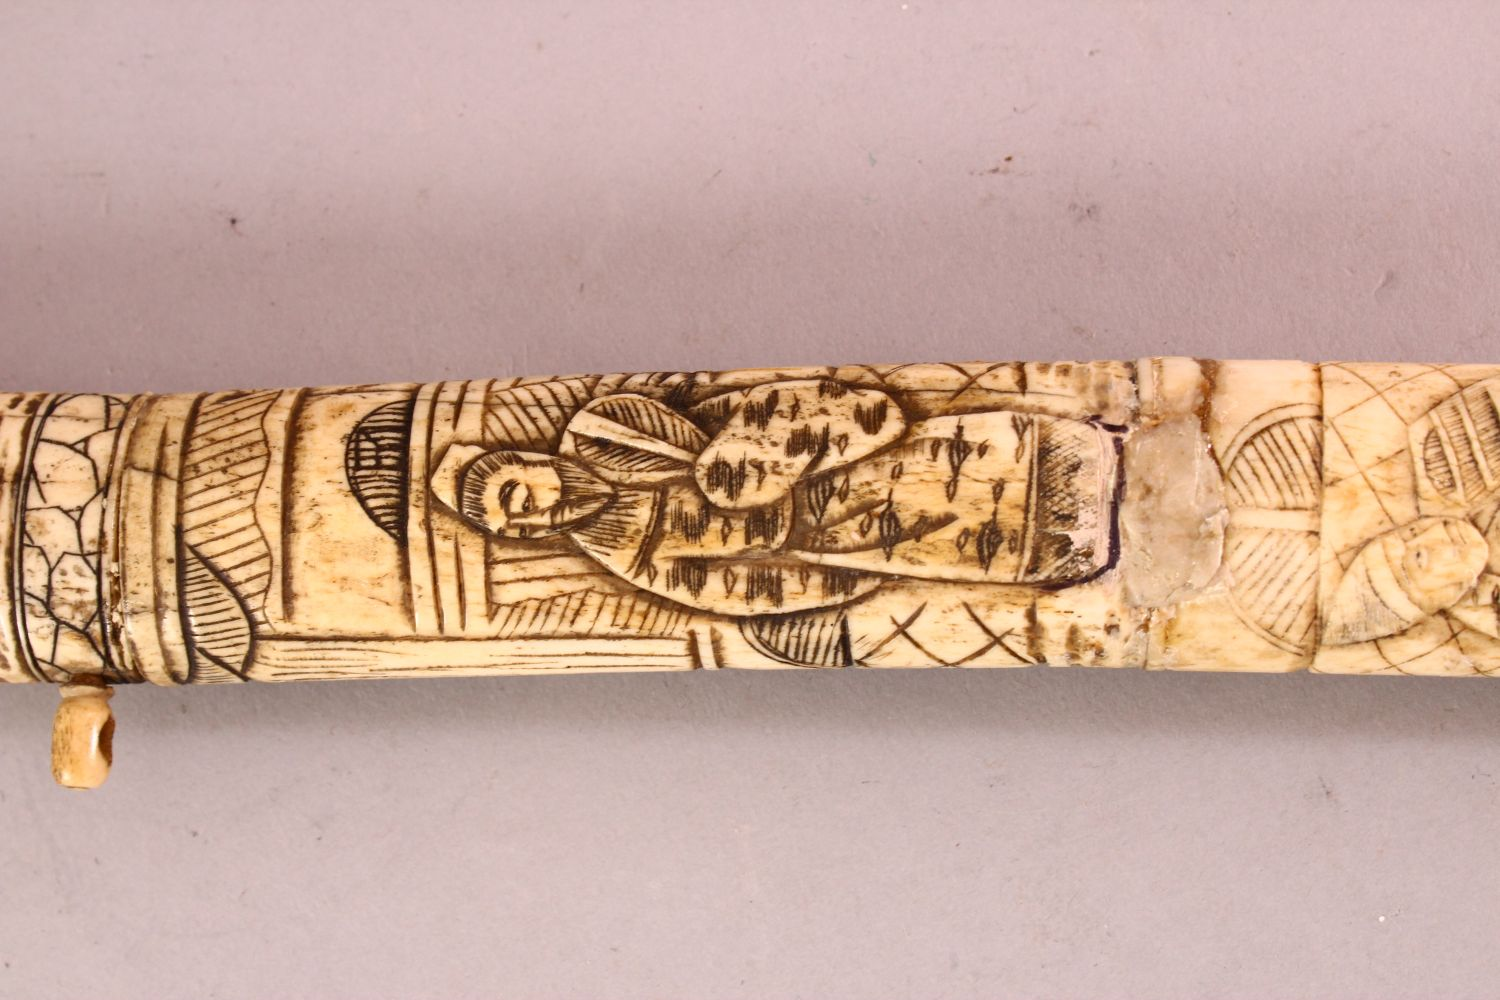 A JAPANESE MEIJI PERIOD SECTIONAL CARVED IVORY SWORD, carved with scenes of figures (AF) 85cm - Image 4 of 7